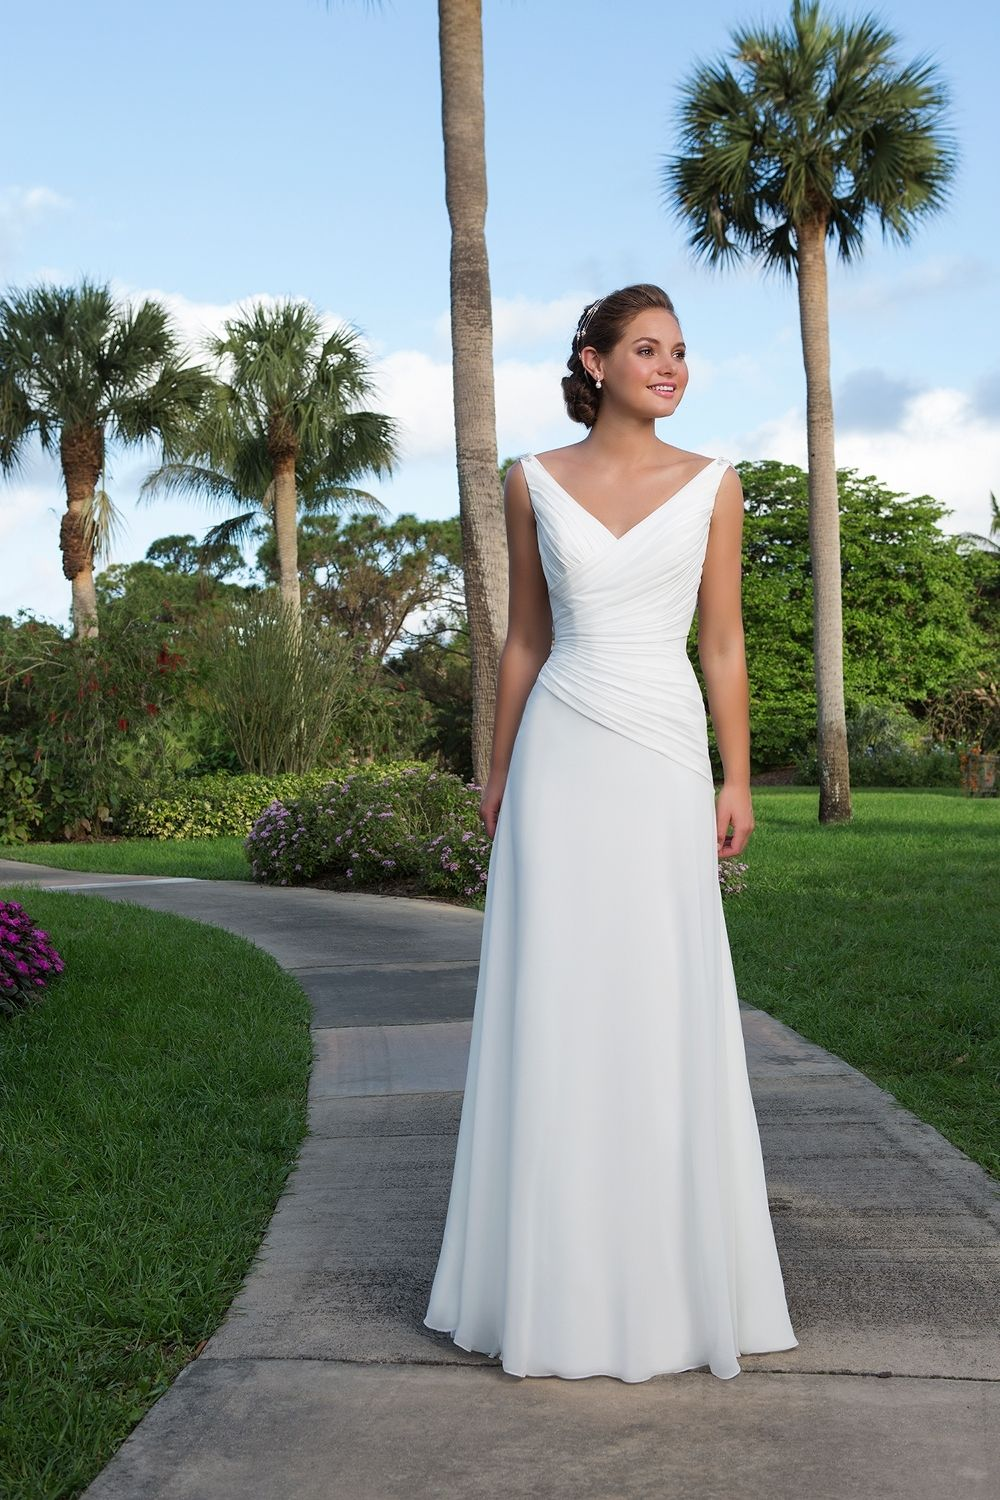 Lightweight Wedding Dresses For Abroad